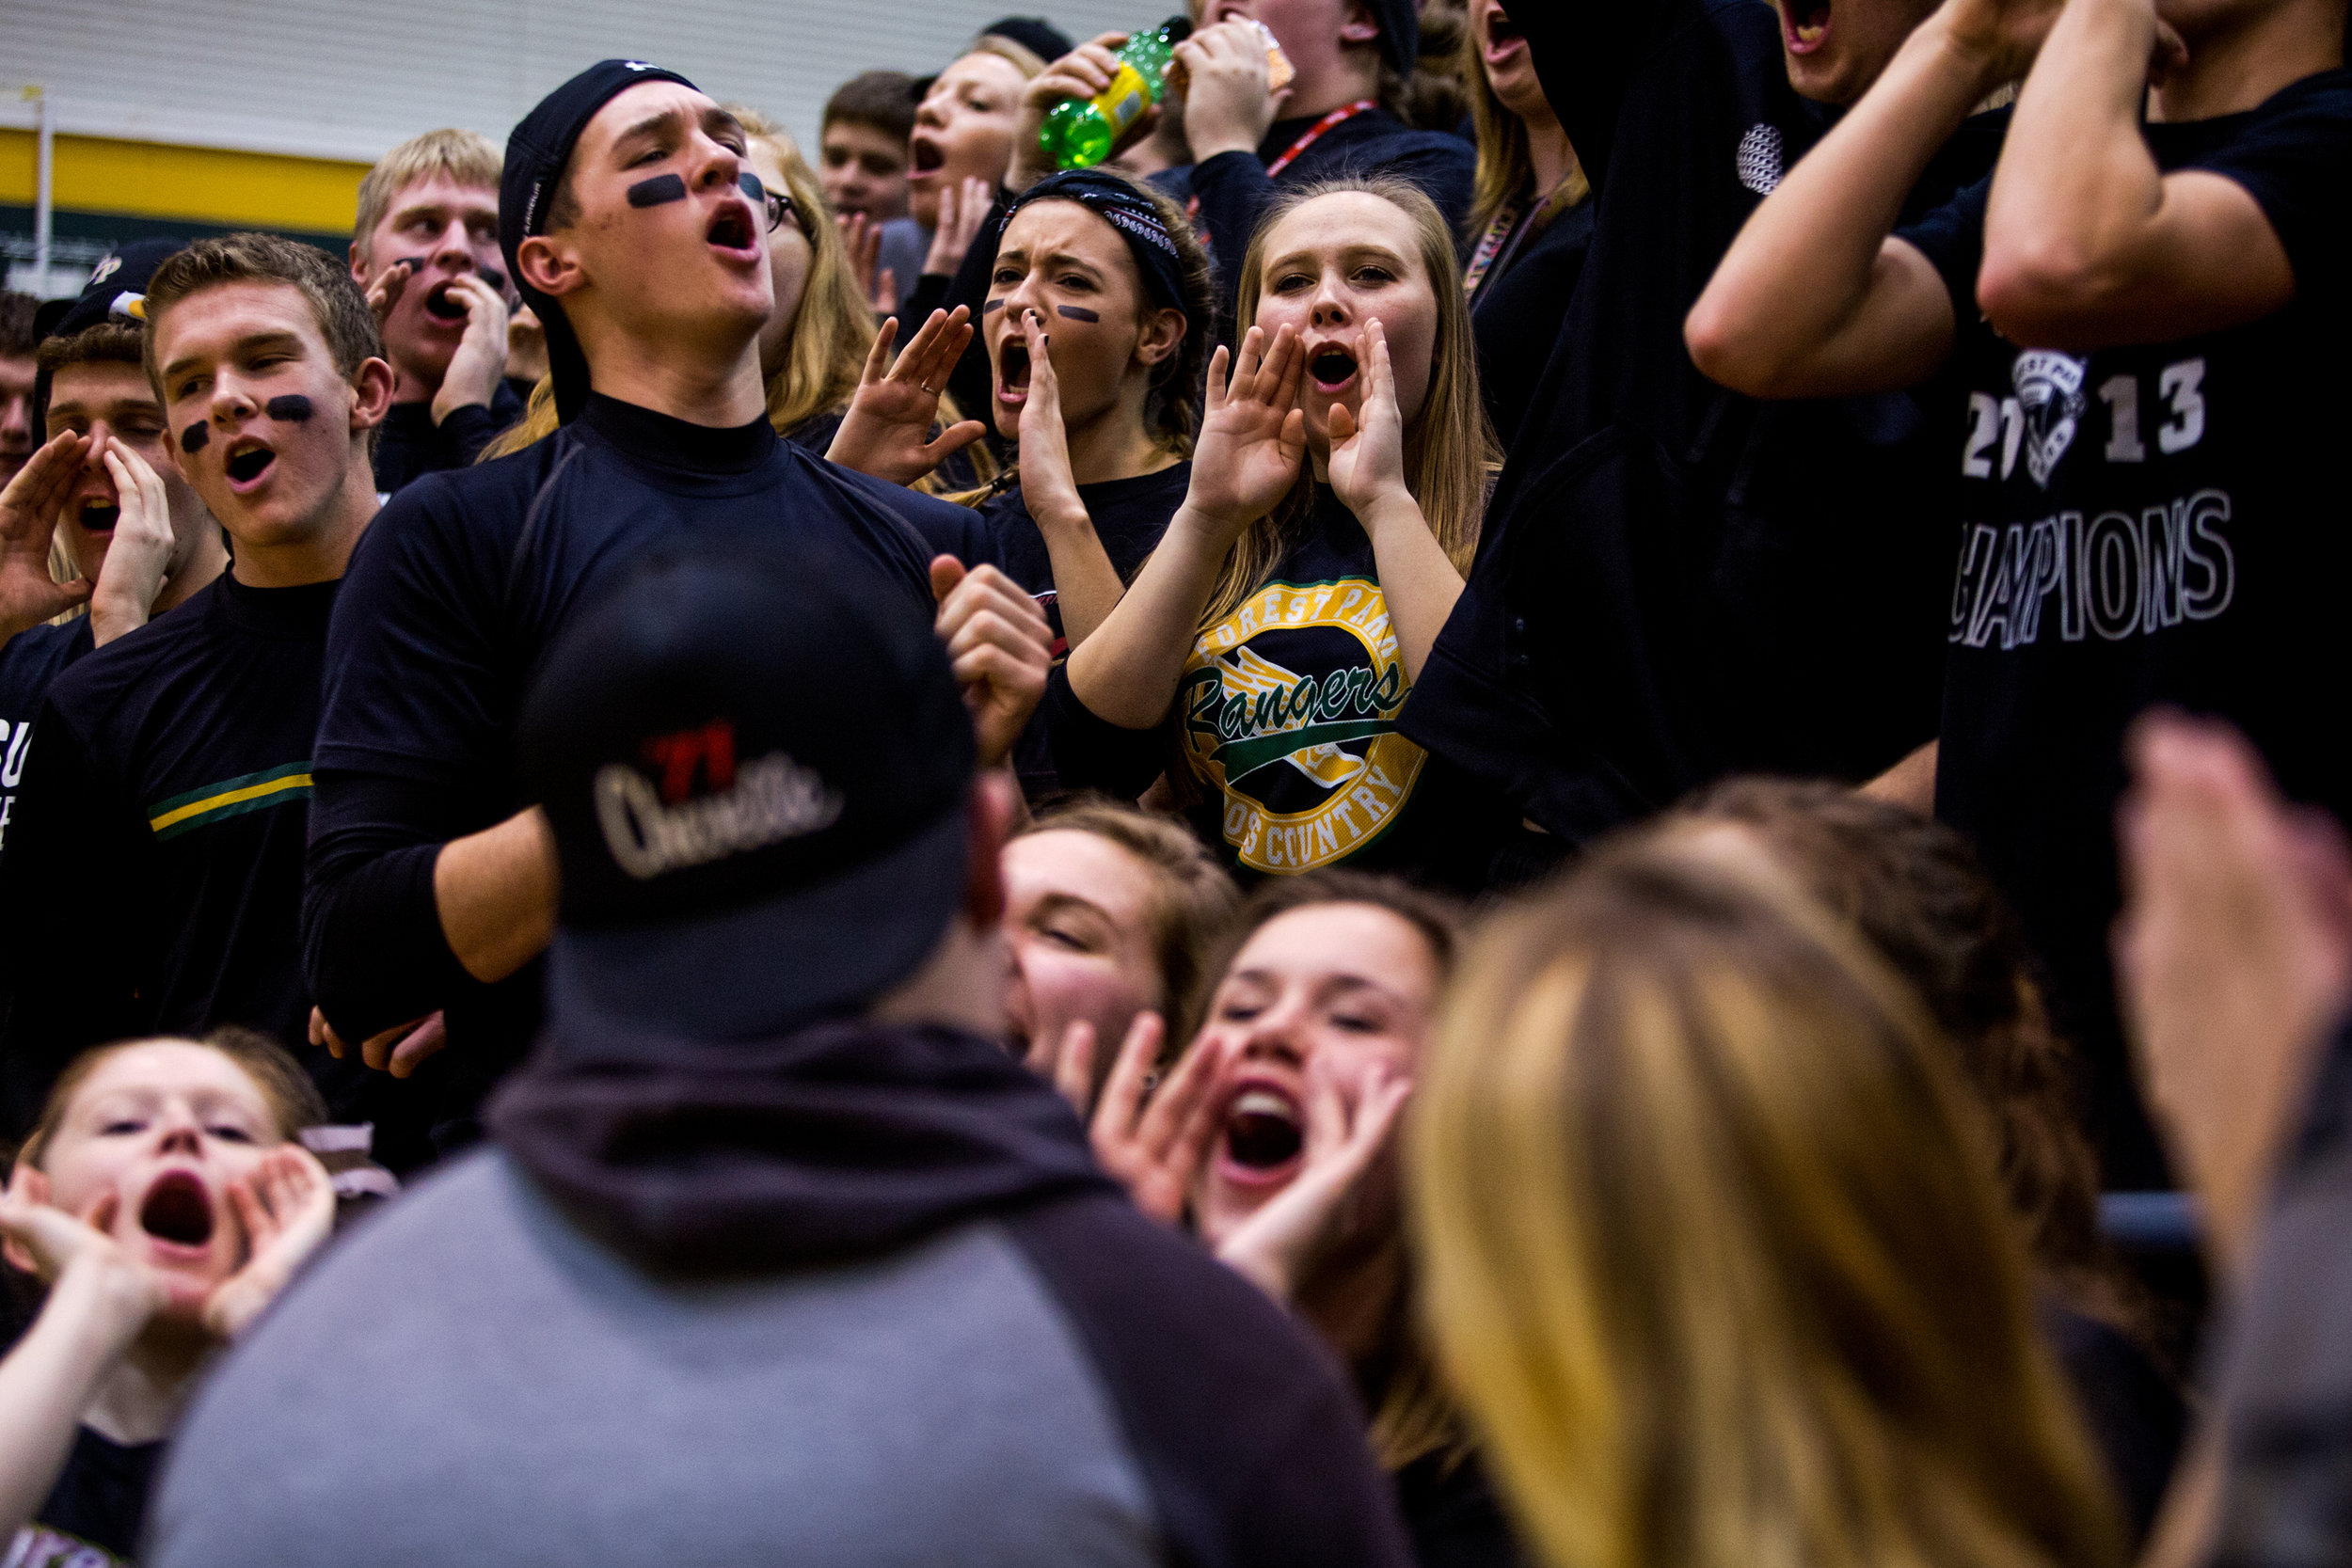 Aliya Haake of Ferdinand, 18, center, stood next to Anna Bailey of Ferdinand, 17, left, while cheering in the student section during Friday night's basketball game at Forest Park High School in Ferdinand. Forest Park defeated South Spencer 62-46.